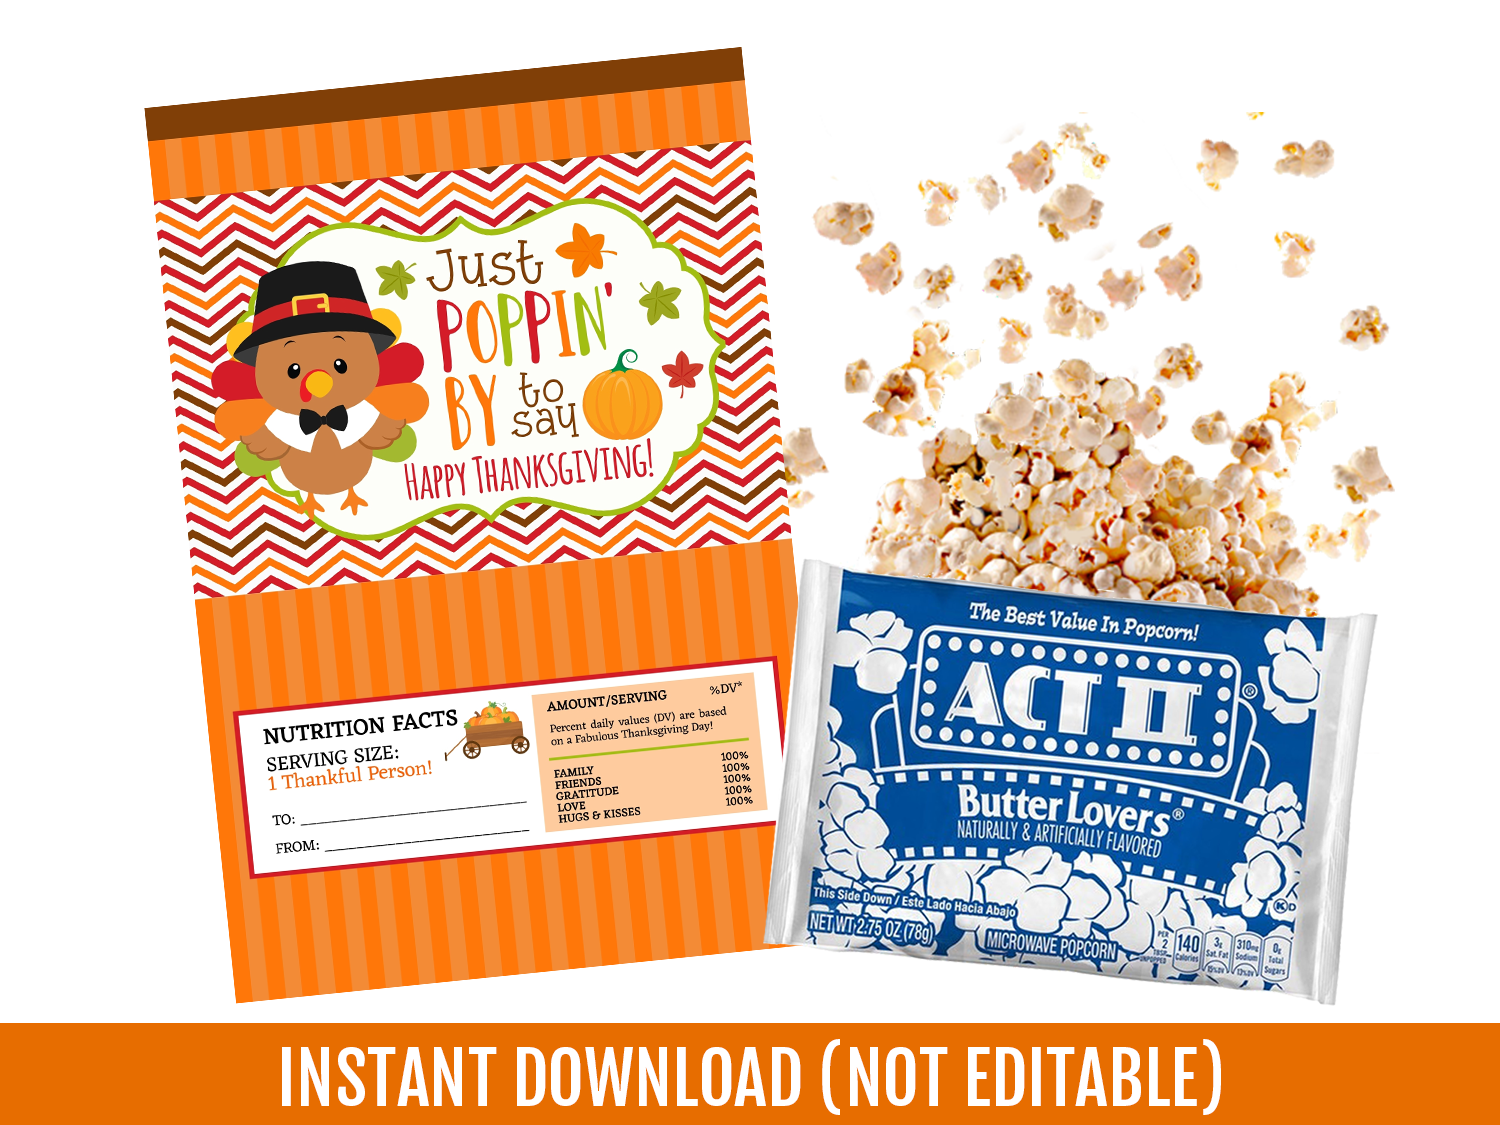 Just Poppin' By to say HAPPY THANKSGIVING Microwave Popcorn Turkey Wrapper, School Exchange Ideas